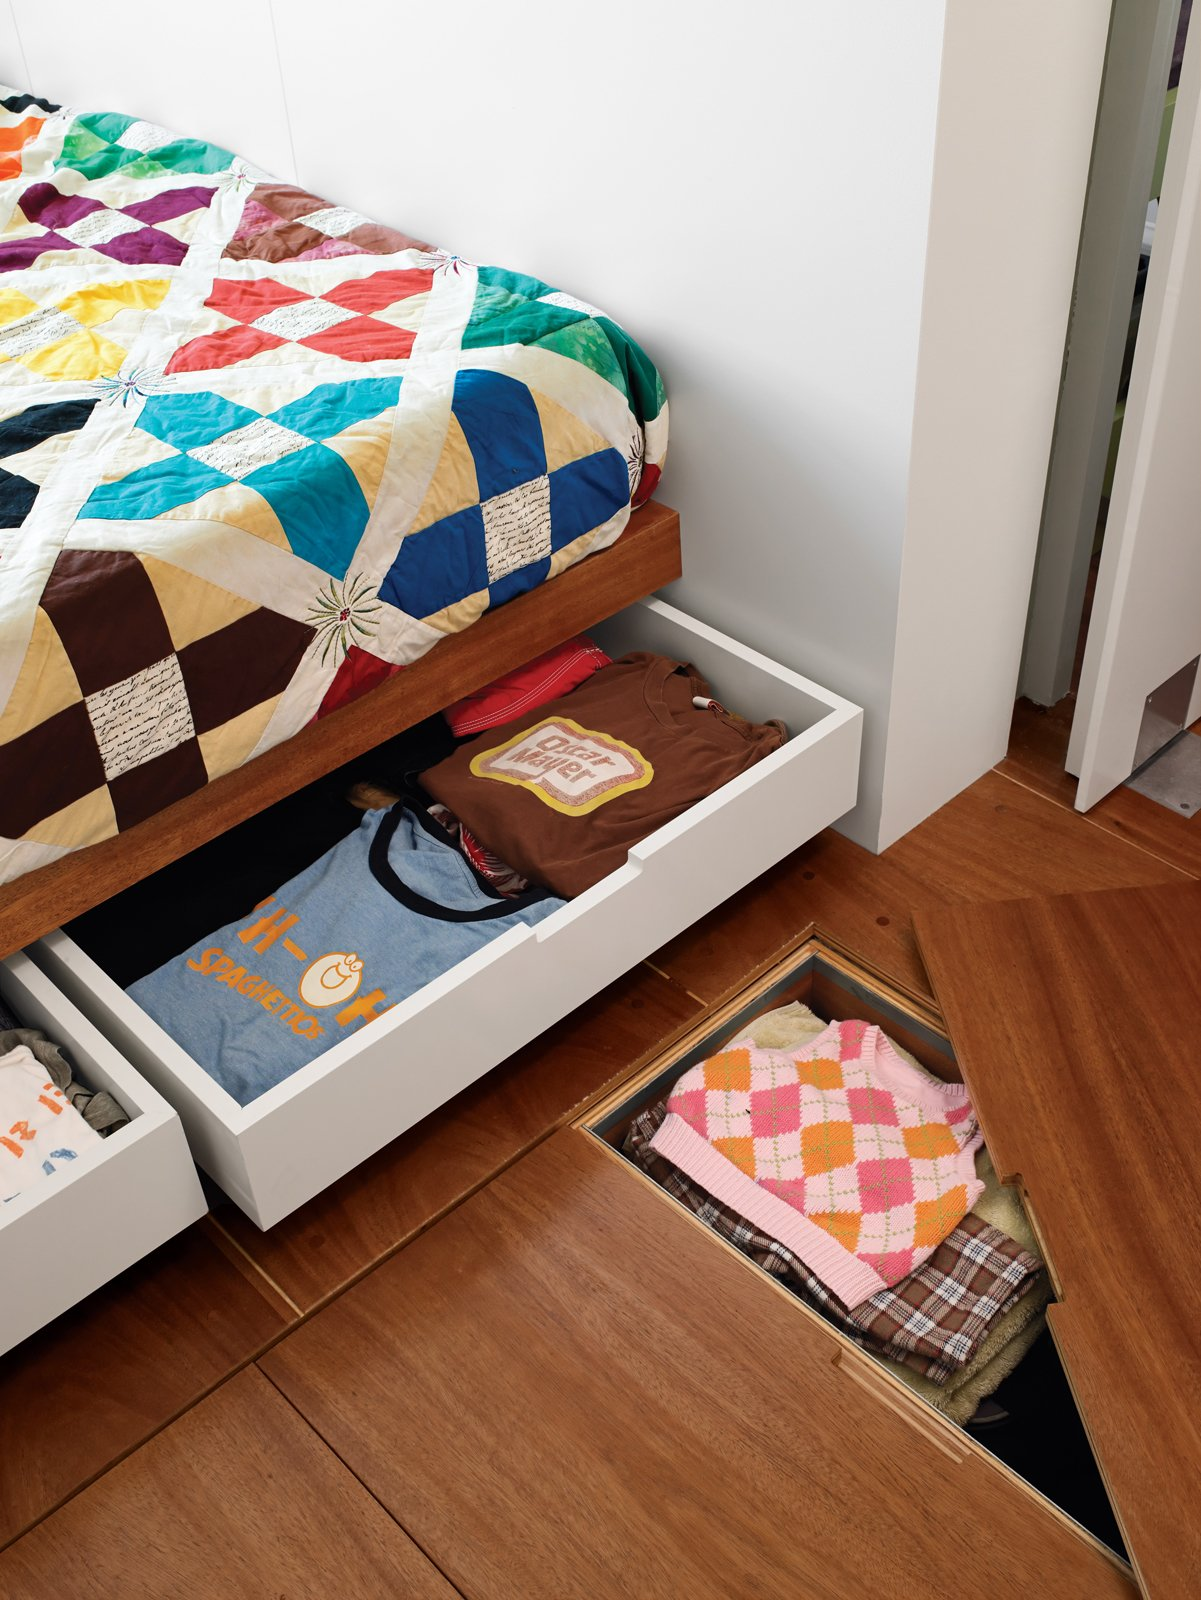 Storage under the bed and floor hides clutter in the master bedroom. Tagged: Storage Room.  Photo 2 of 11 in 10 Ways to Solve Storage Problems in Small Spaces from Storage-Smart Renovation in New York City